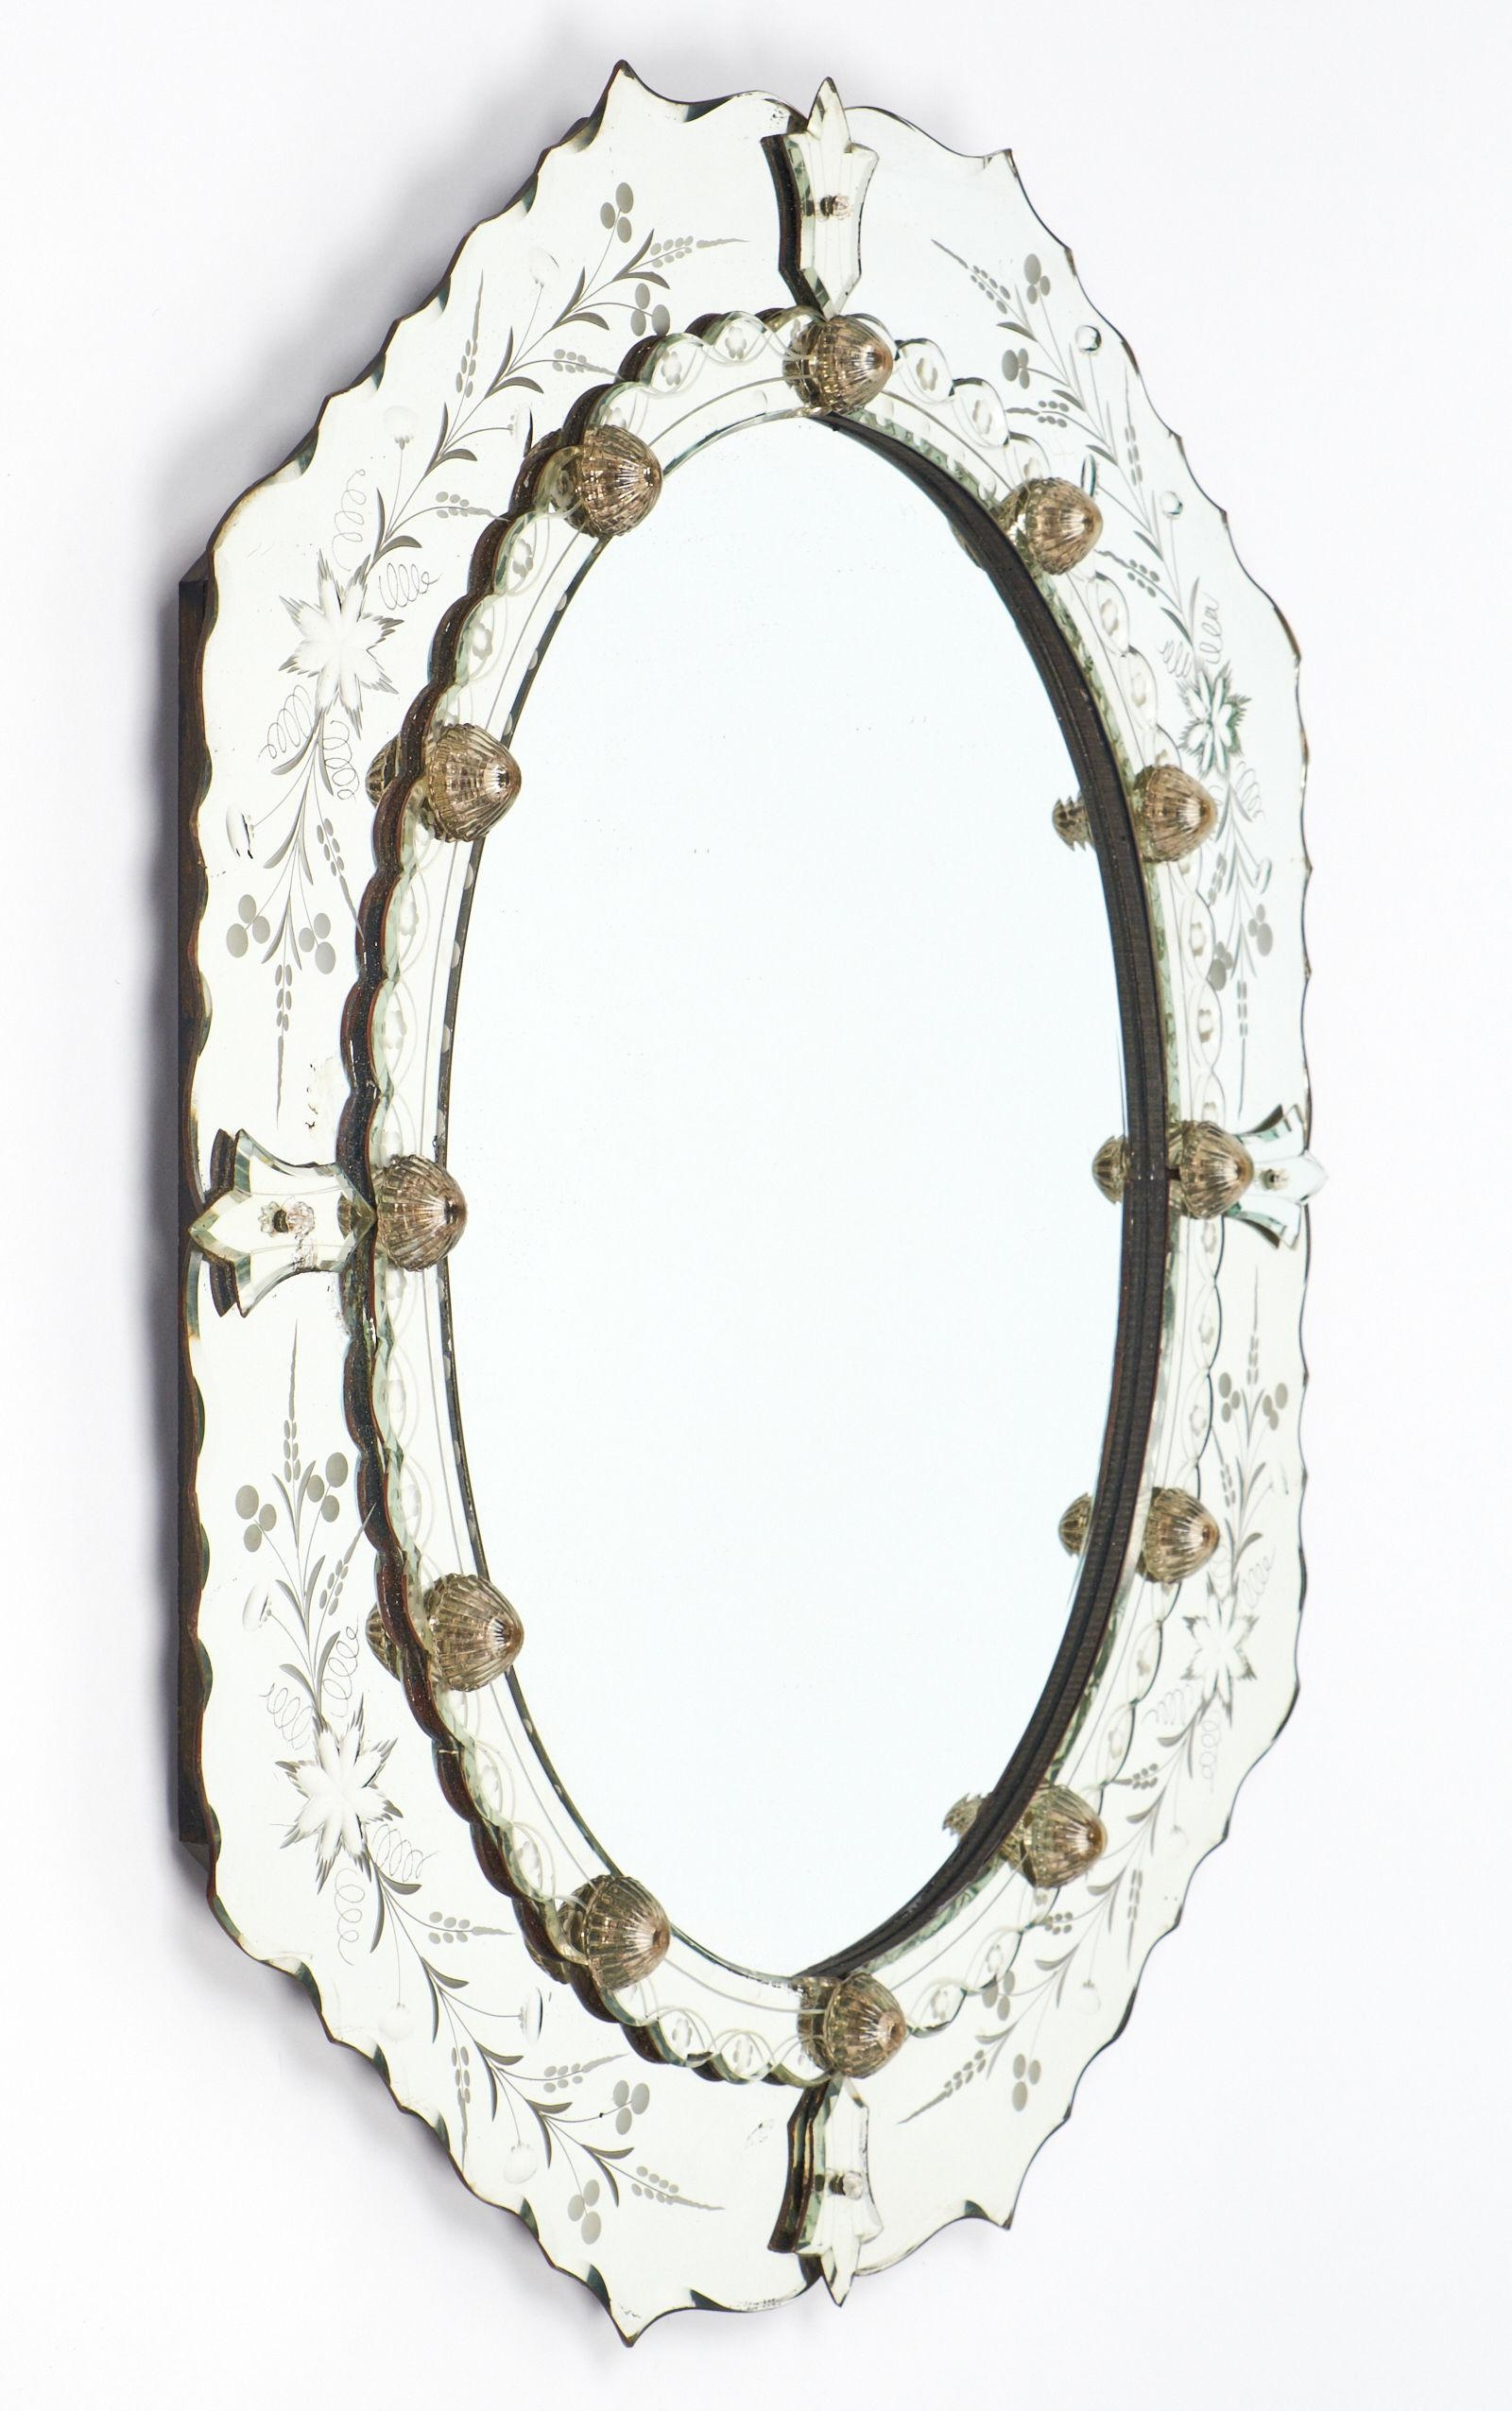 Antique Venetian Glass Oval Mirror – Jean Marc Fray With Regard To Venetian Oval Mirror (Image 3 of 20)